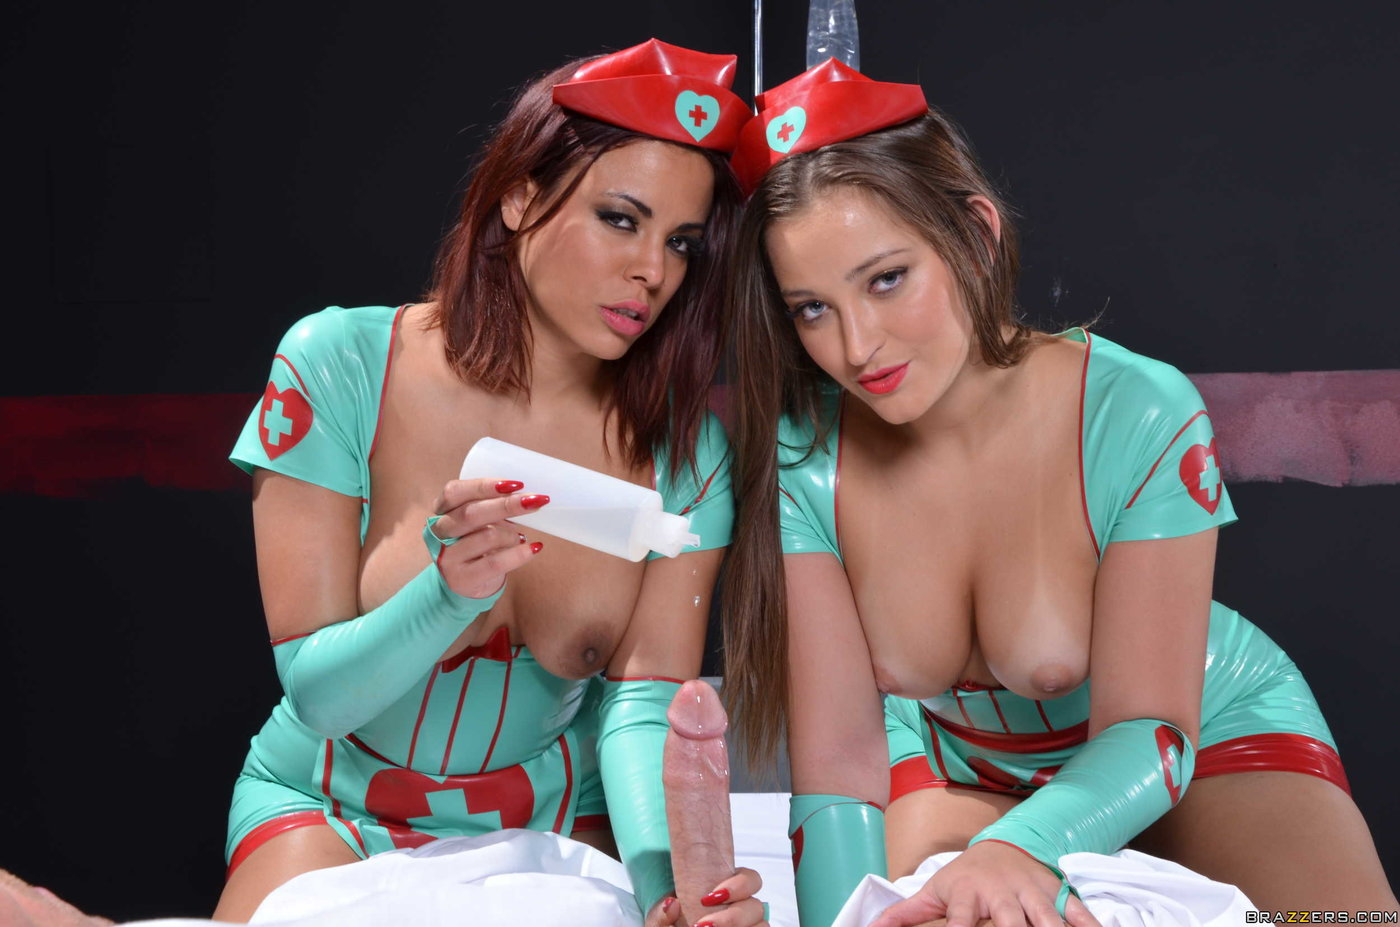 Latex get-up horny nurse and her GF double-teaming a hung dude